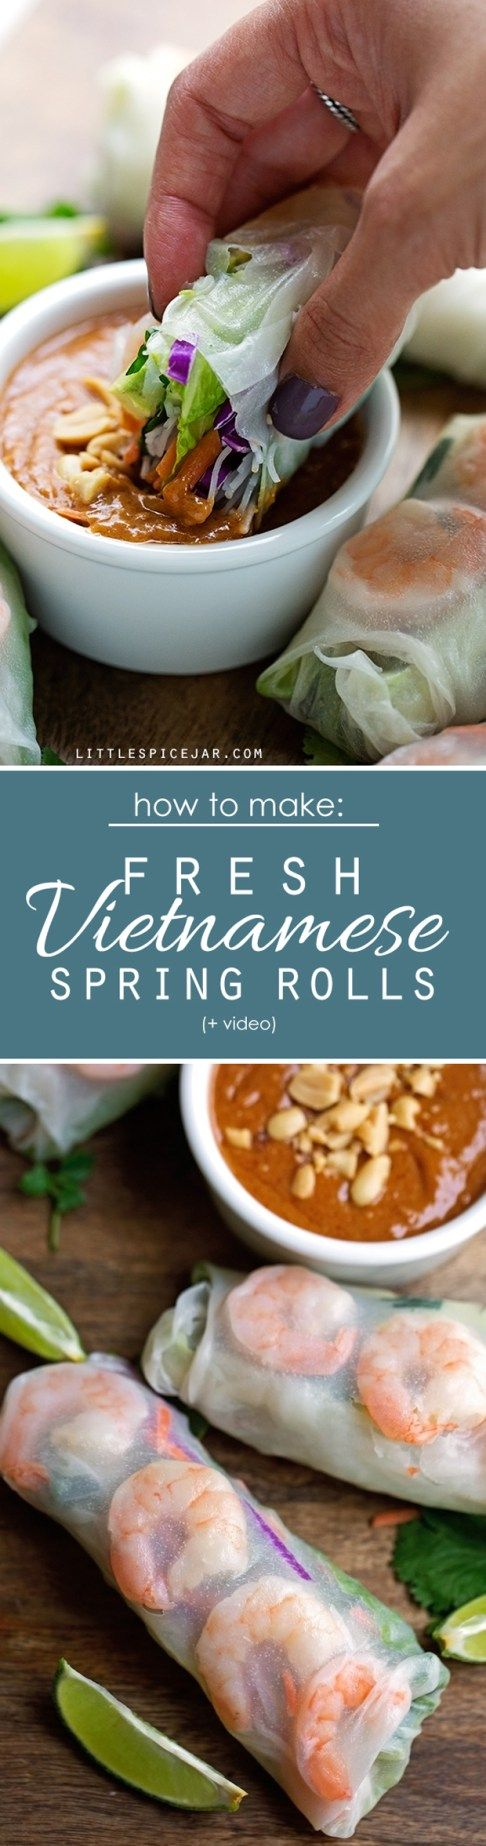 47 best Vietnamese Recipes images on Pinterest | Vietnamese recipes ...